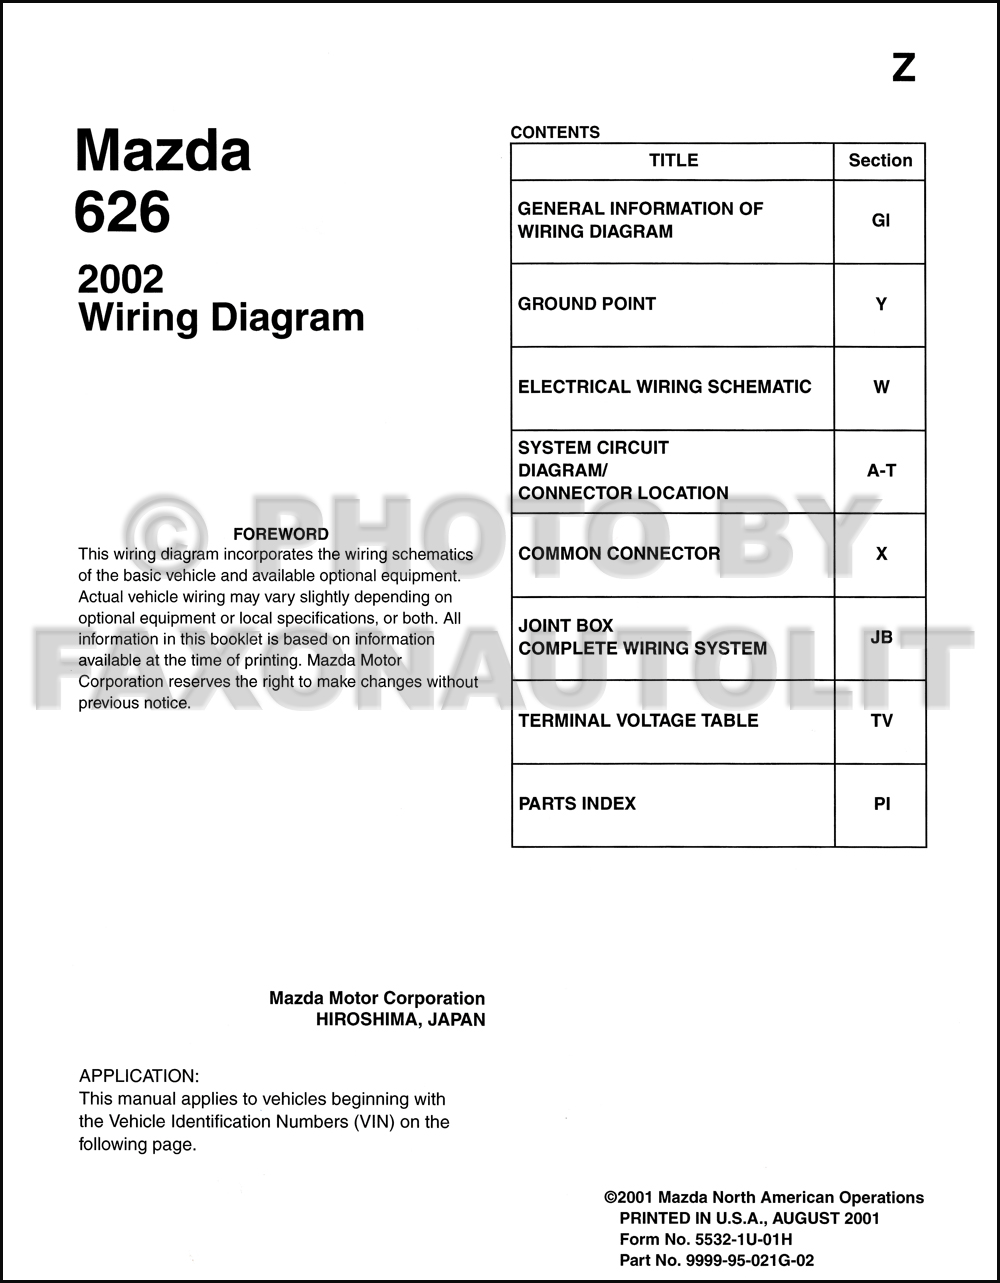 Mazda 626 Wiring Diagram Diagrams Box 2001 Fuse 2002 Manual Original Cooling System